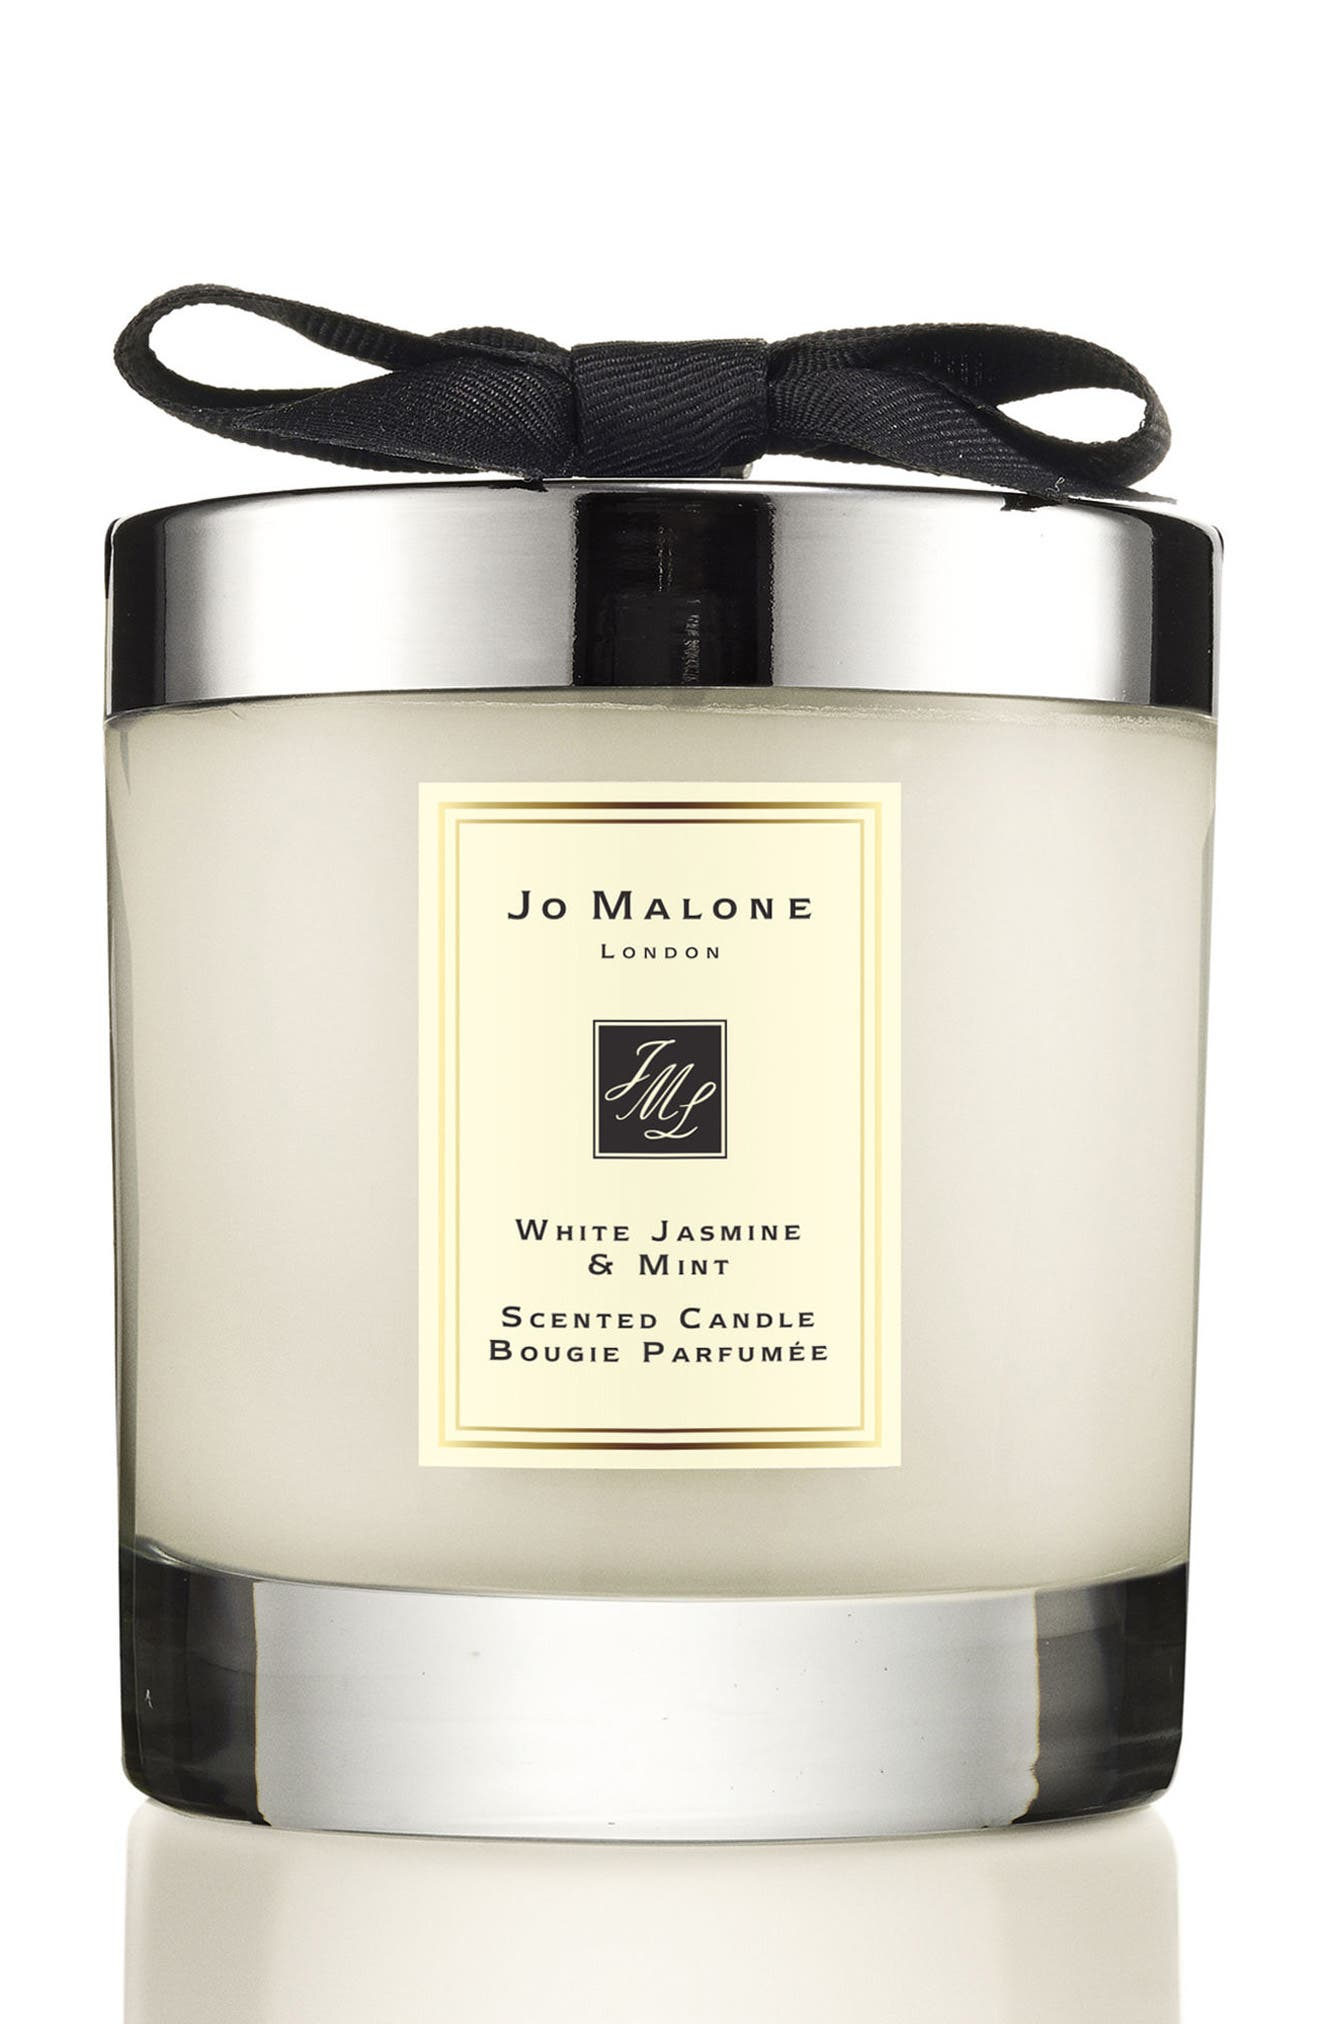 Jo Malone™ 'White Jasmine & Mint' Scented Home Candle